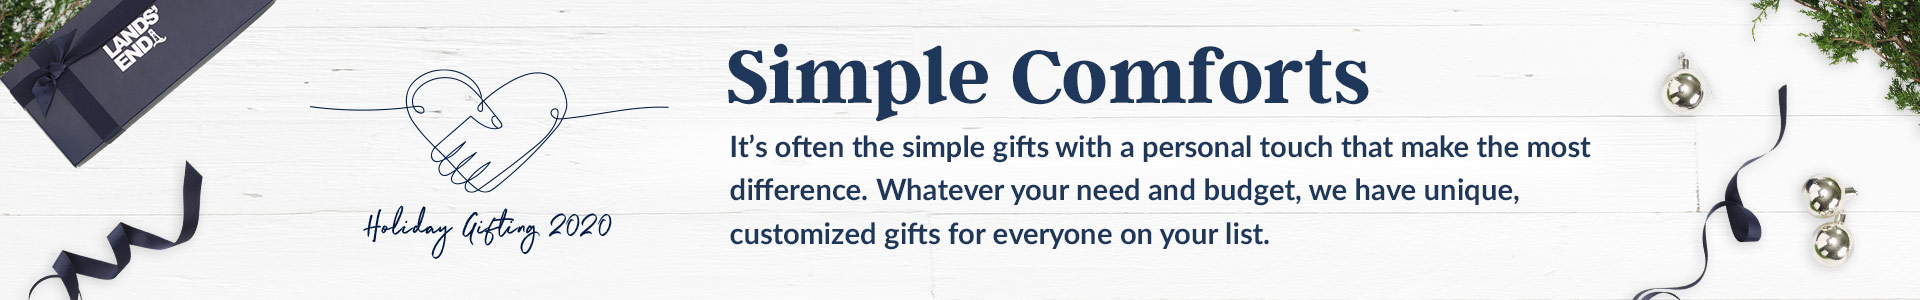 Simple Comforts. It's often the simple gifts with a personal touch that make the most difference. Whatever your need and budget, we have you unique, customized gifts for everyone on your list.